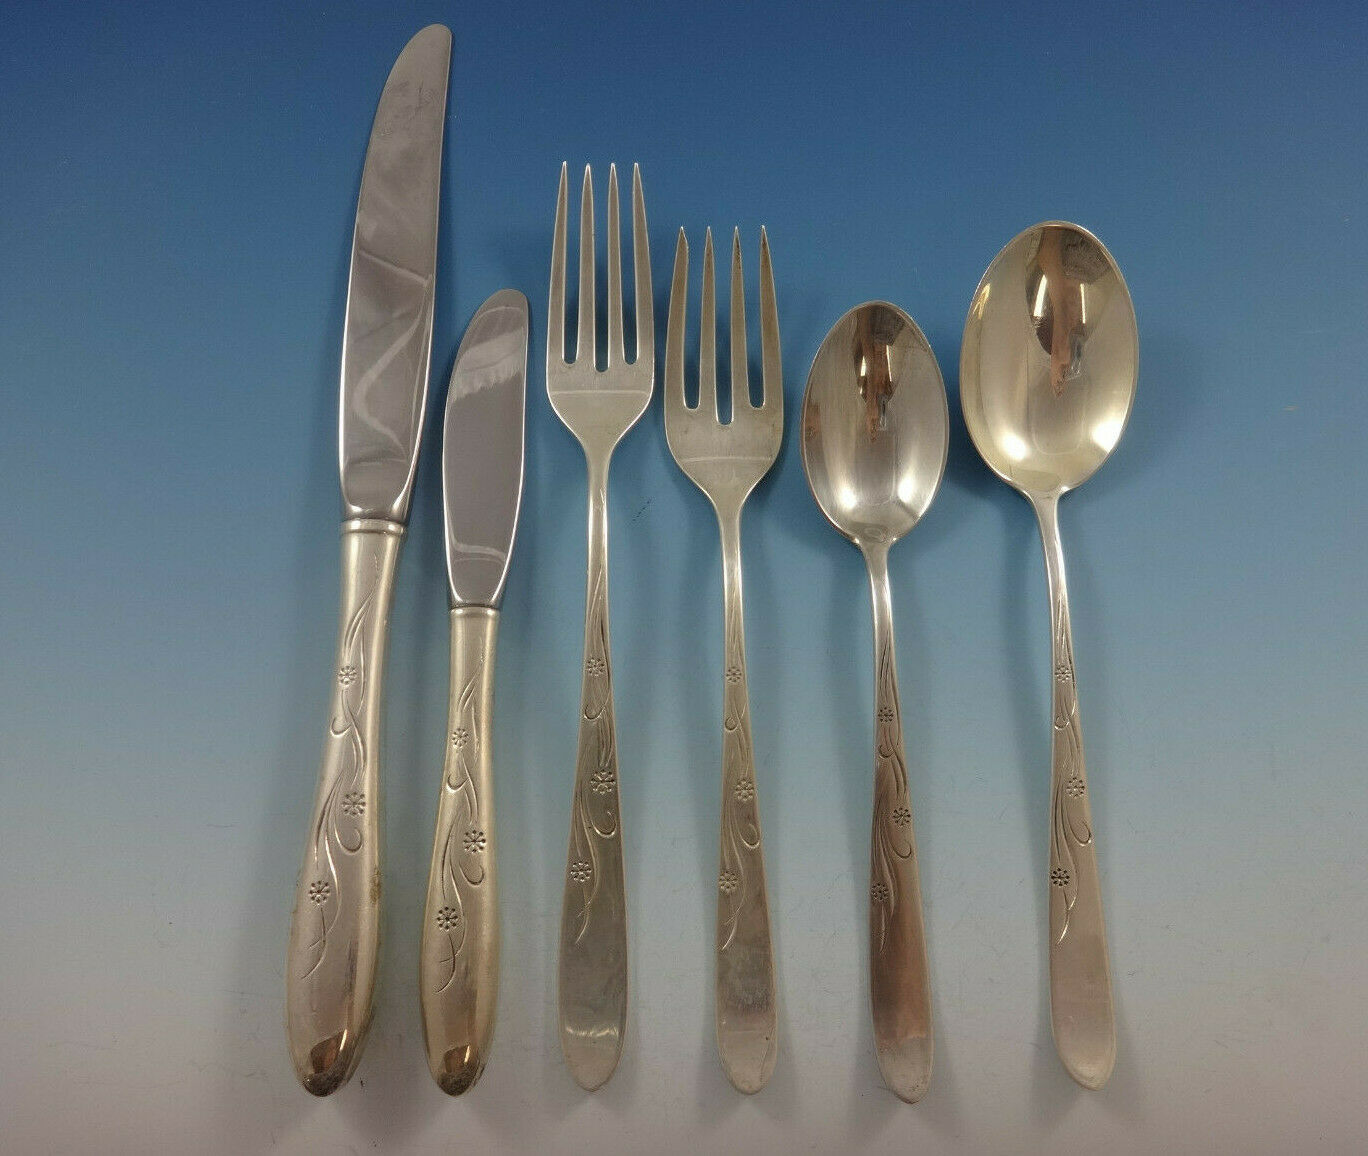 Primary image for Cynthia Engraved by Kirk Sterling Silver Flatware Service For 12 Set 77 Pieces